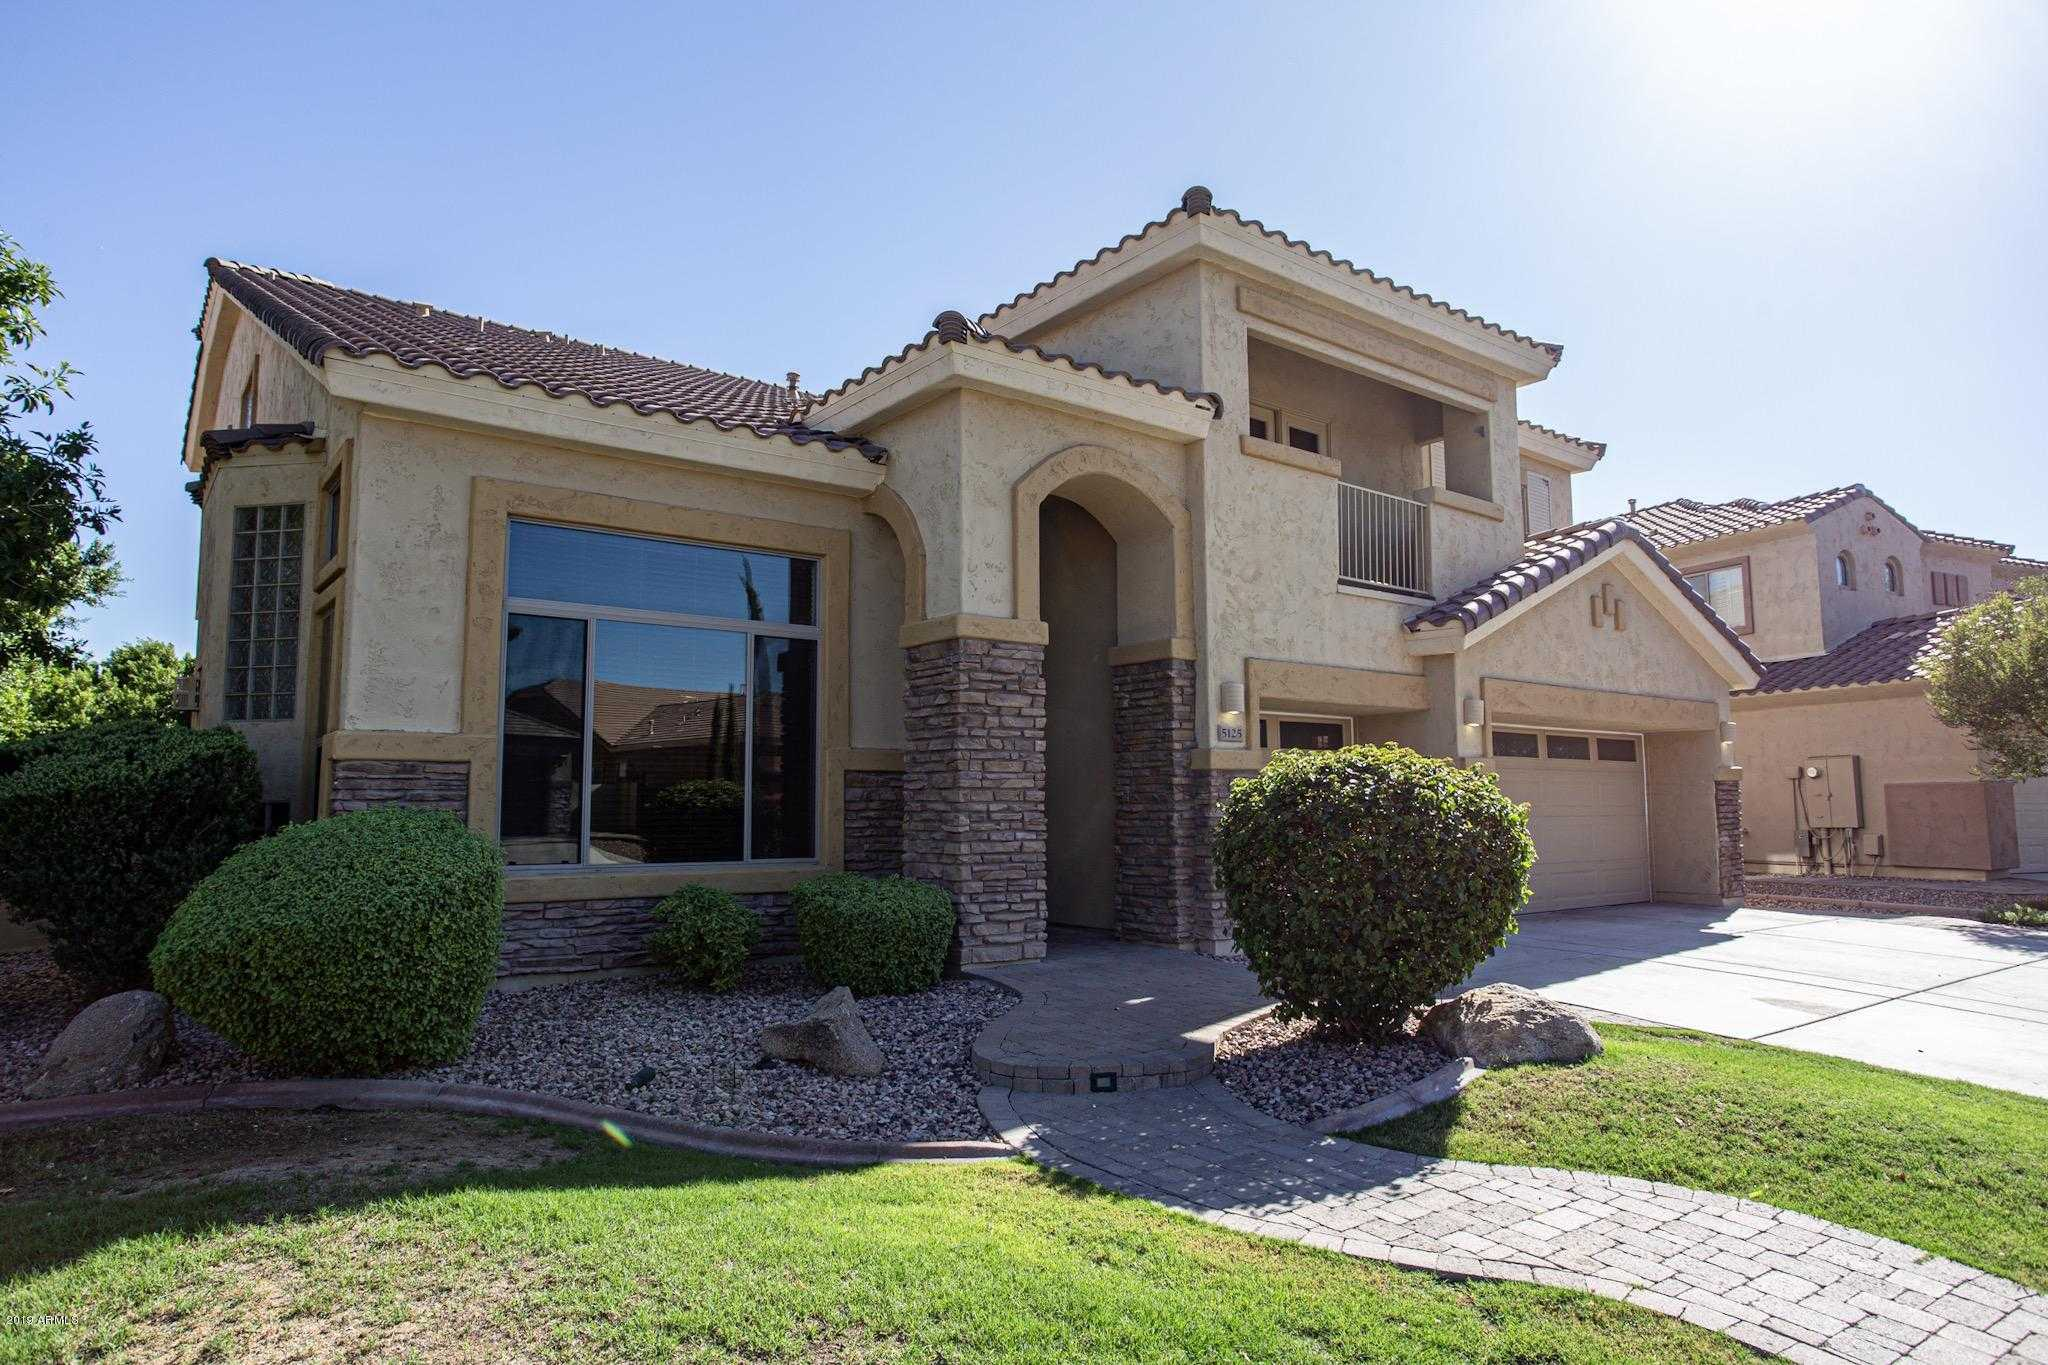 $525,000 - 4Br/3Ba - Home for Sale in Stetson Valley Parcels 21-22, Phoenix